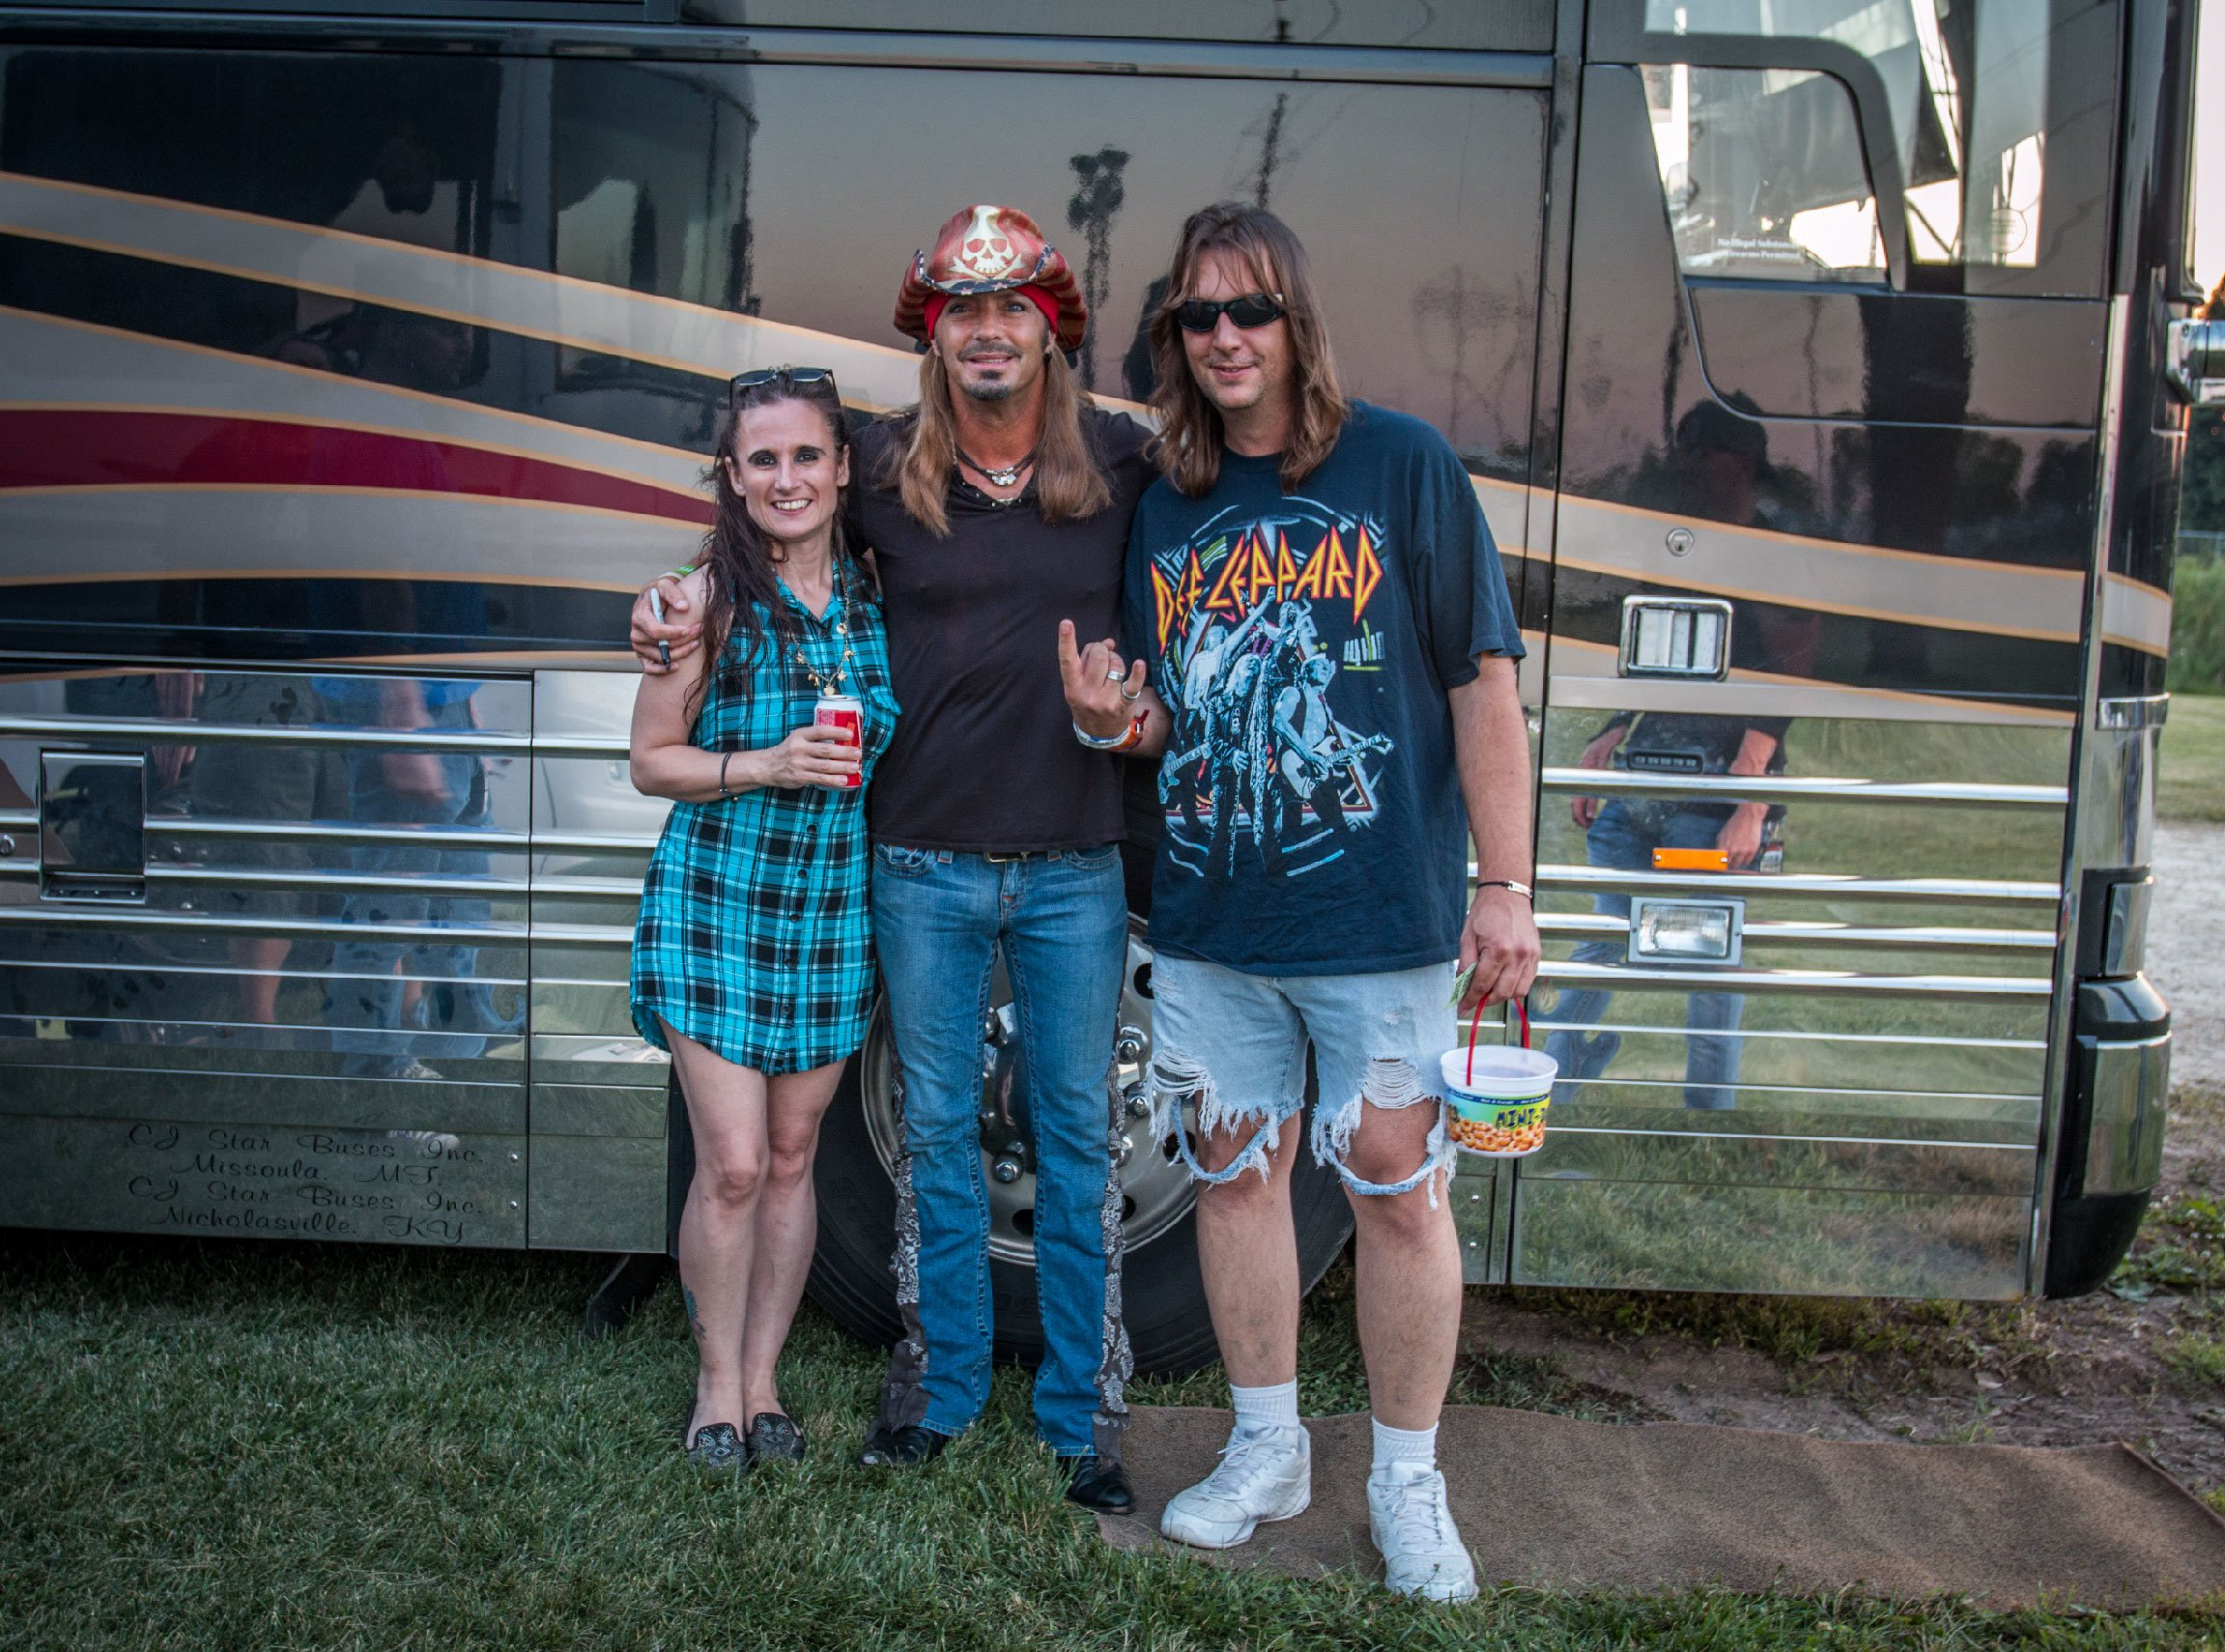 Bret michaels meet greet pictures washington county fair park here are the pictures from the bret michaels meet greet at the washington county fair on 72415 m4hsunfo